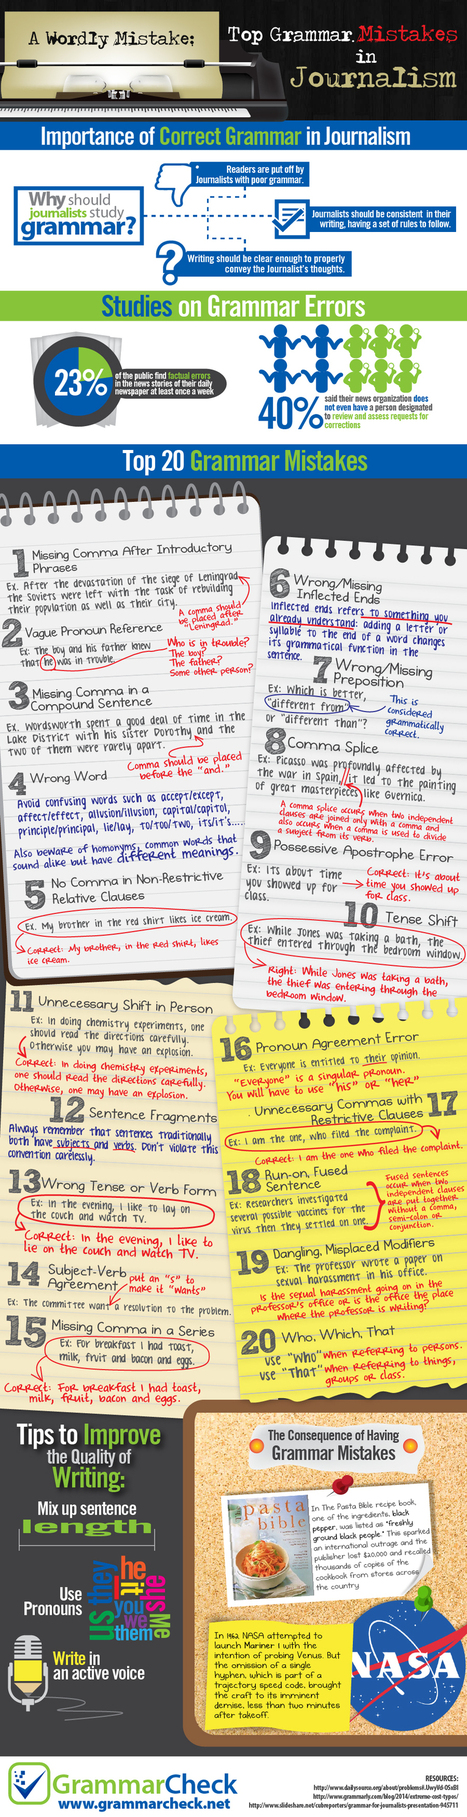 A Wordly Mistake: Top 20 Grammar Mistakes in Journalism ... | The Learning Lounge | Scoop.it